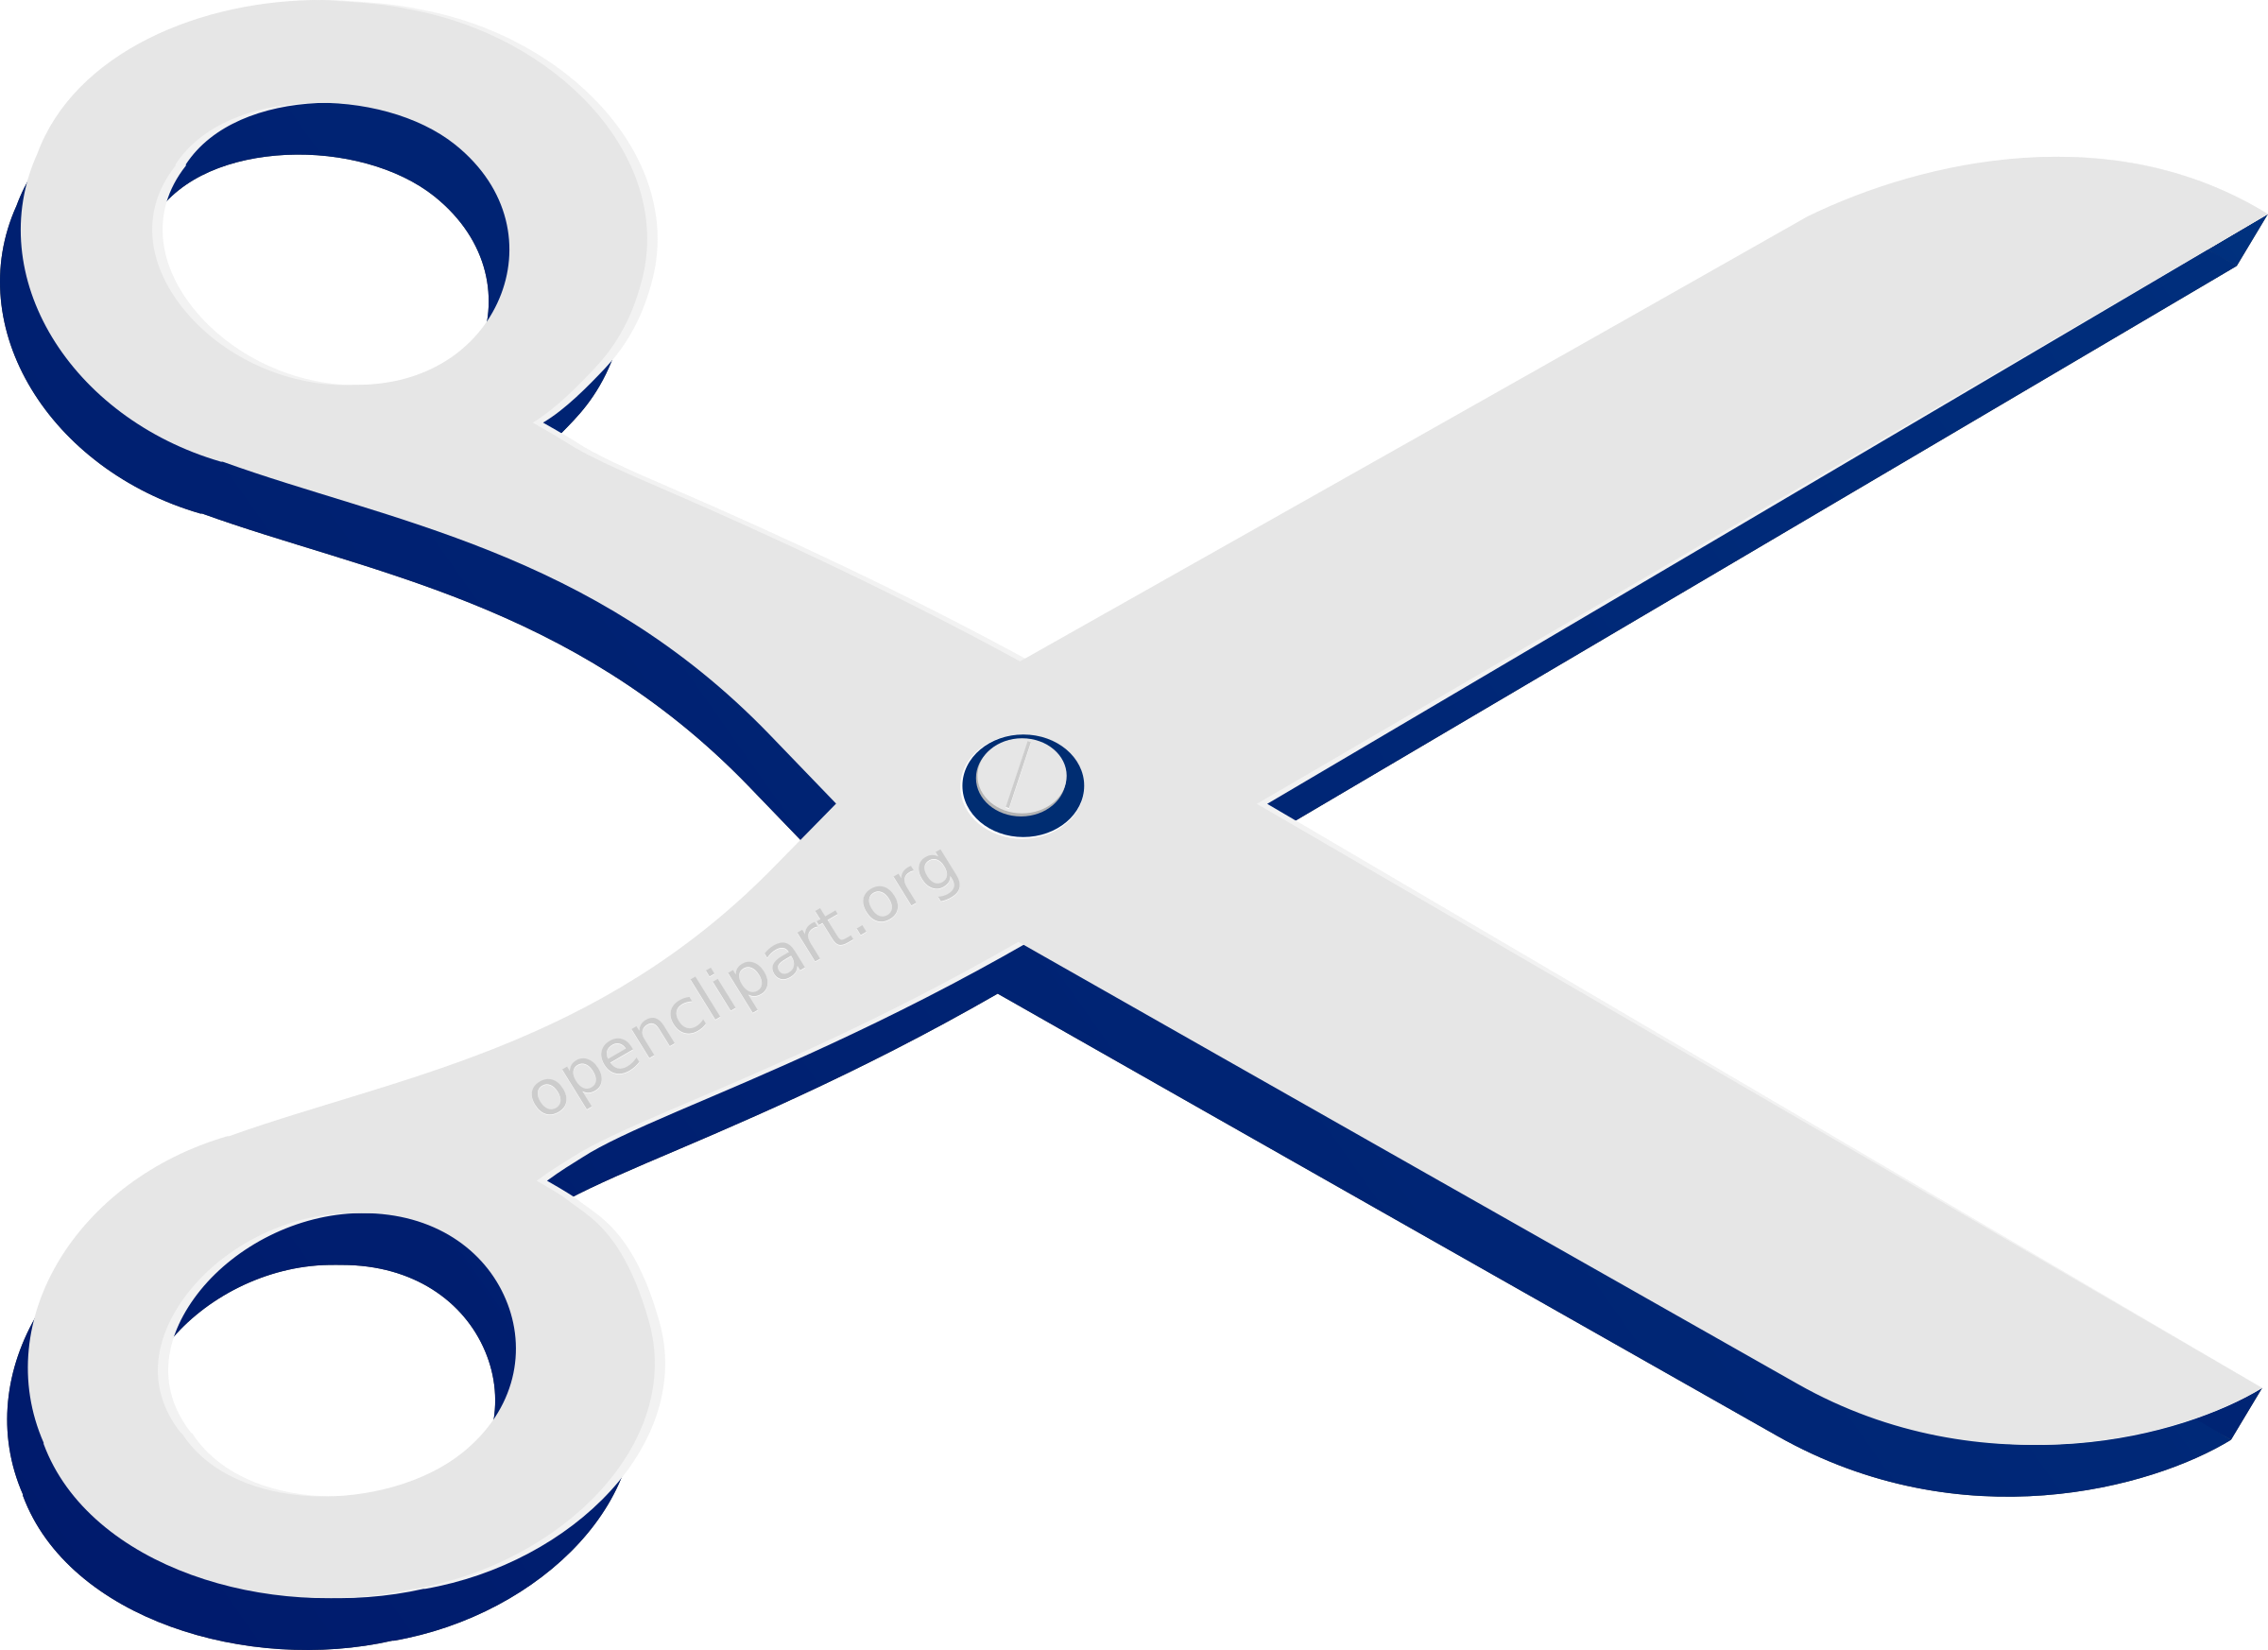 A Remix Of Openclipart Scissors Logo in Blue  by hackdorte